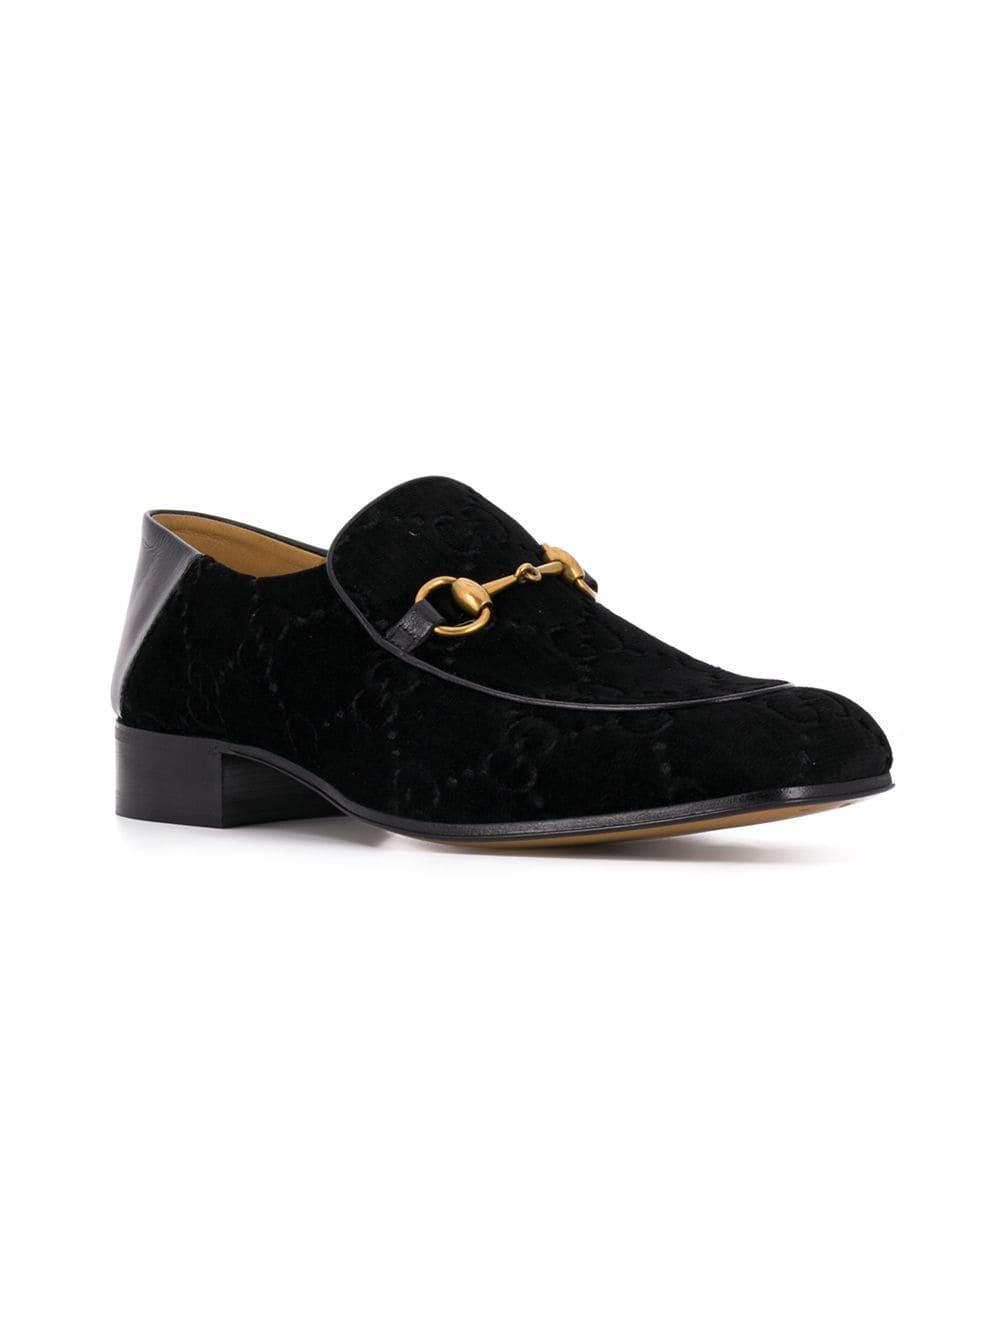 b03e88bb1 Lyst - Gucci Horsebit Loafers in Black for Men - Save 24%